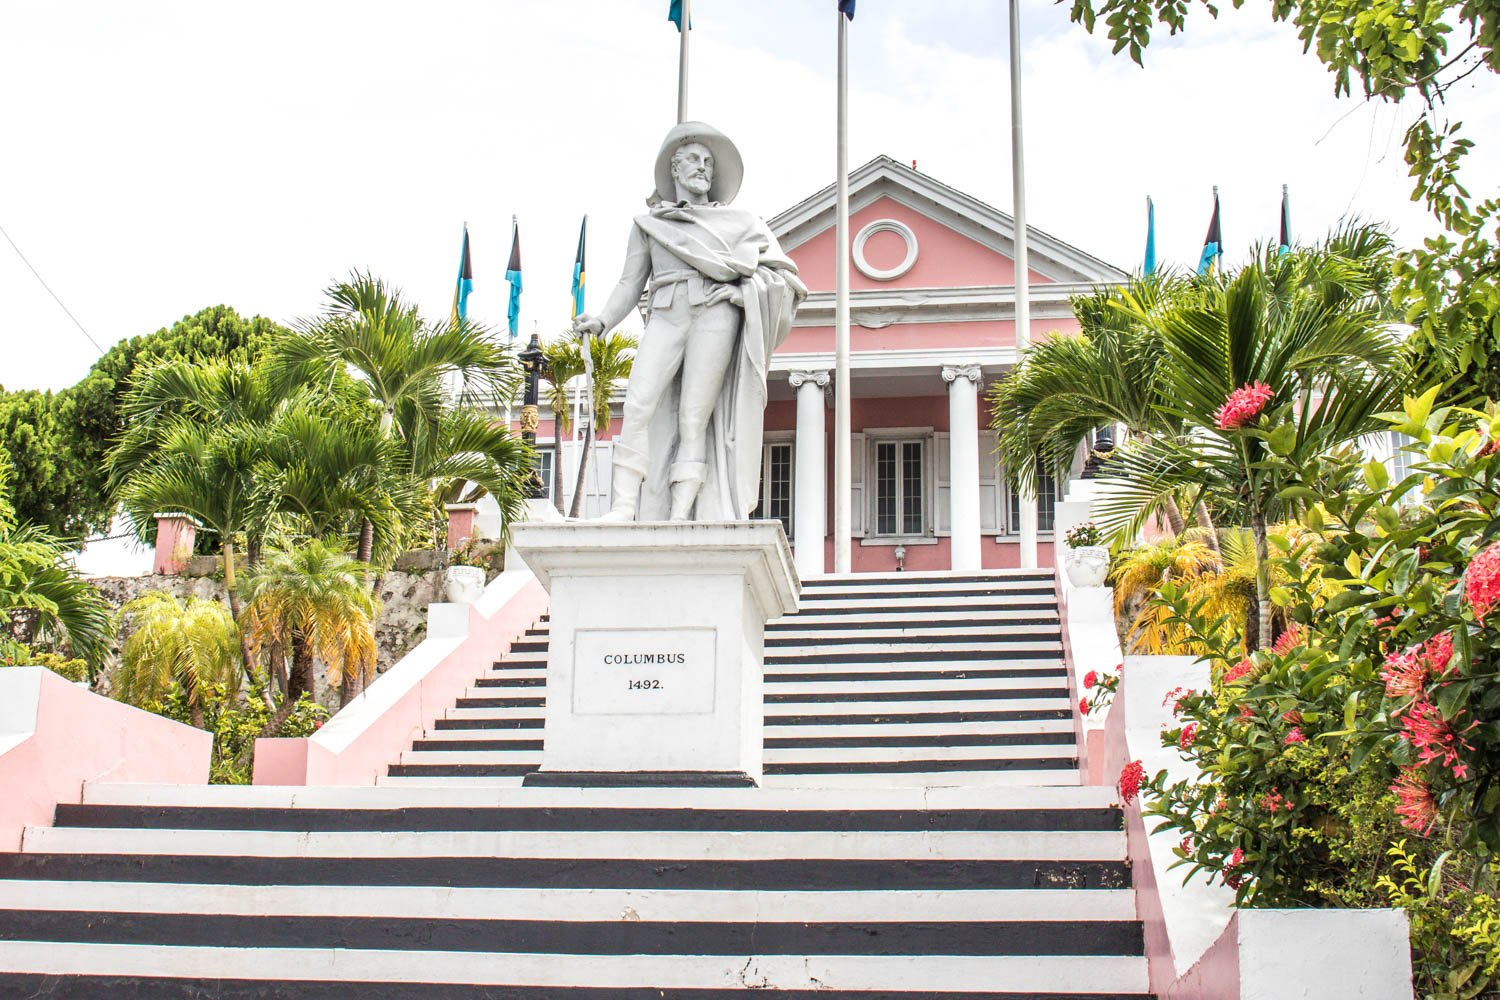 Nassau is an important tourism center in the Bahamas. There are many things to do in Nassau on a cruise even if you don't know what to do in Nassau Bahamas.